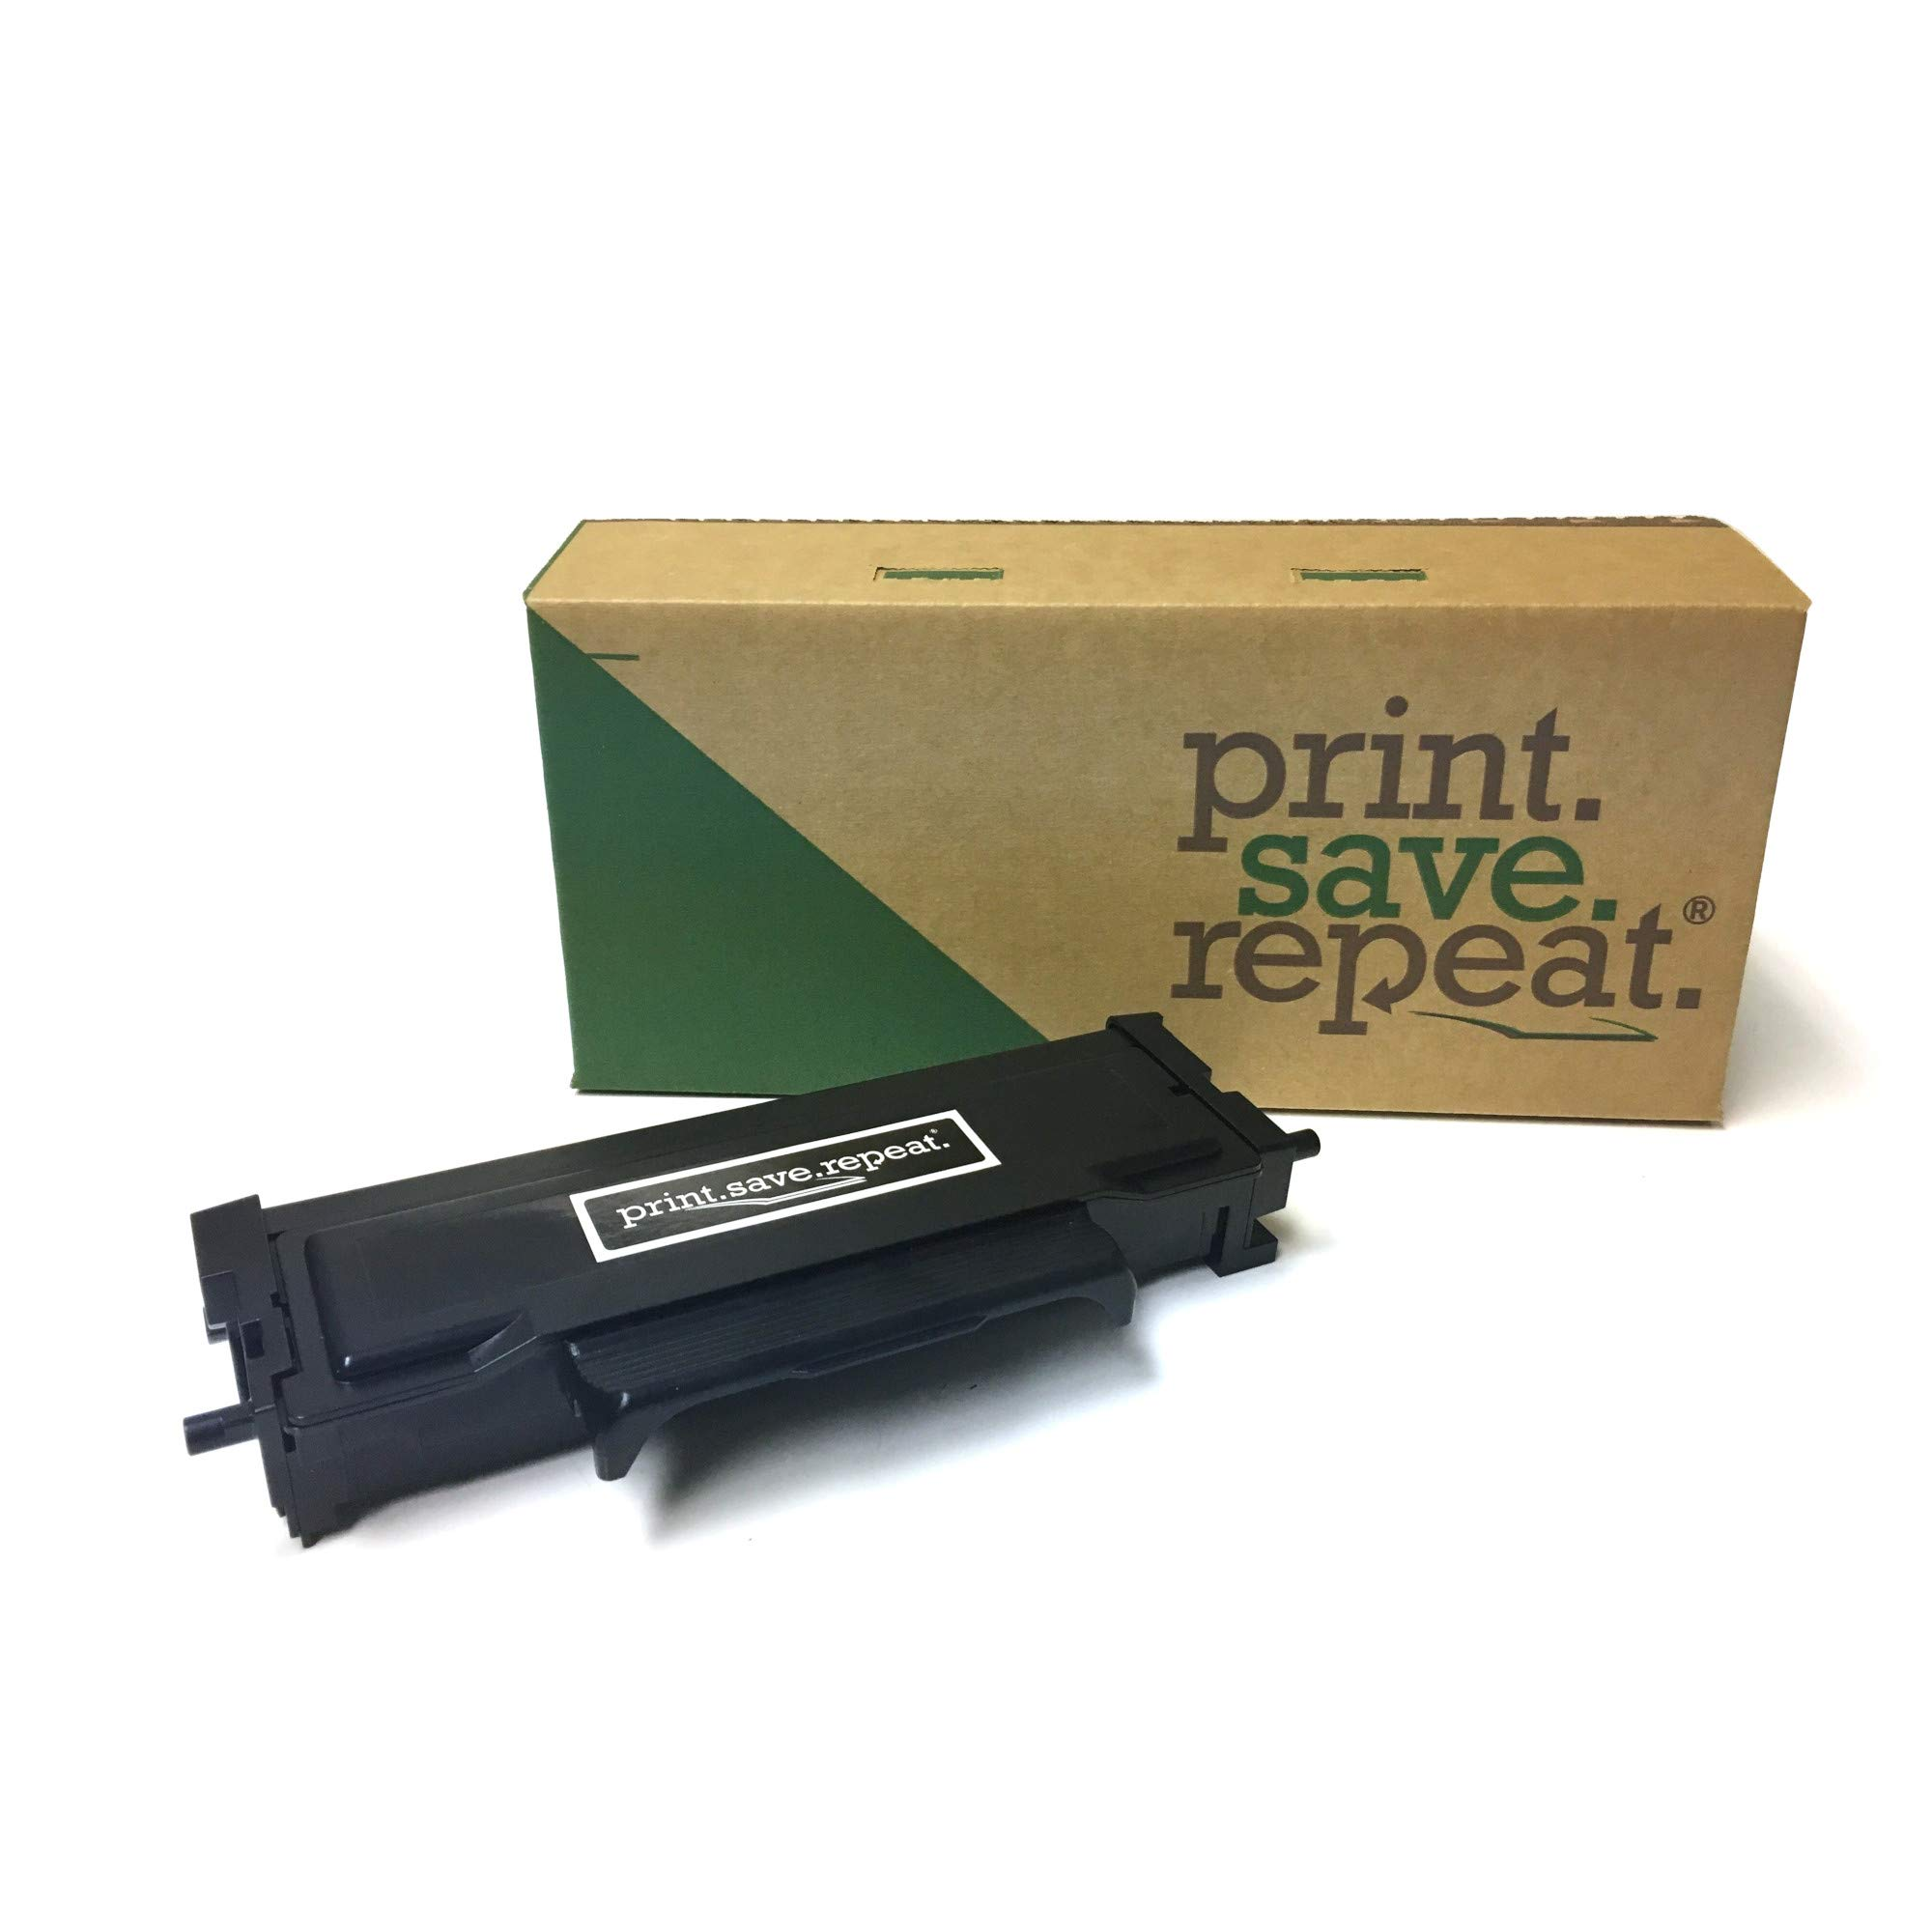 Print.Save.Repeat. Lexmark B221H00 High Yield Remanufactured Toner Cartridge for B2236, MB2236 [3,000 Pages]